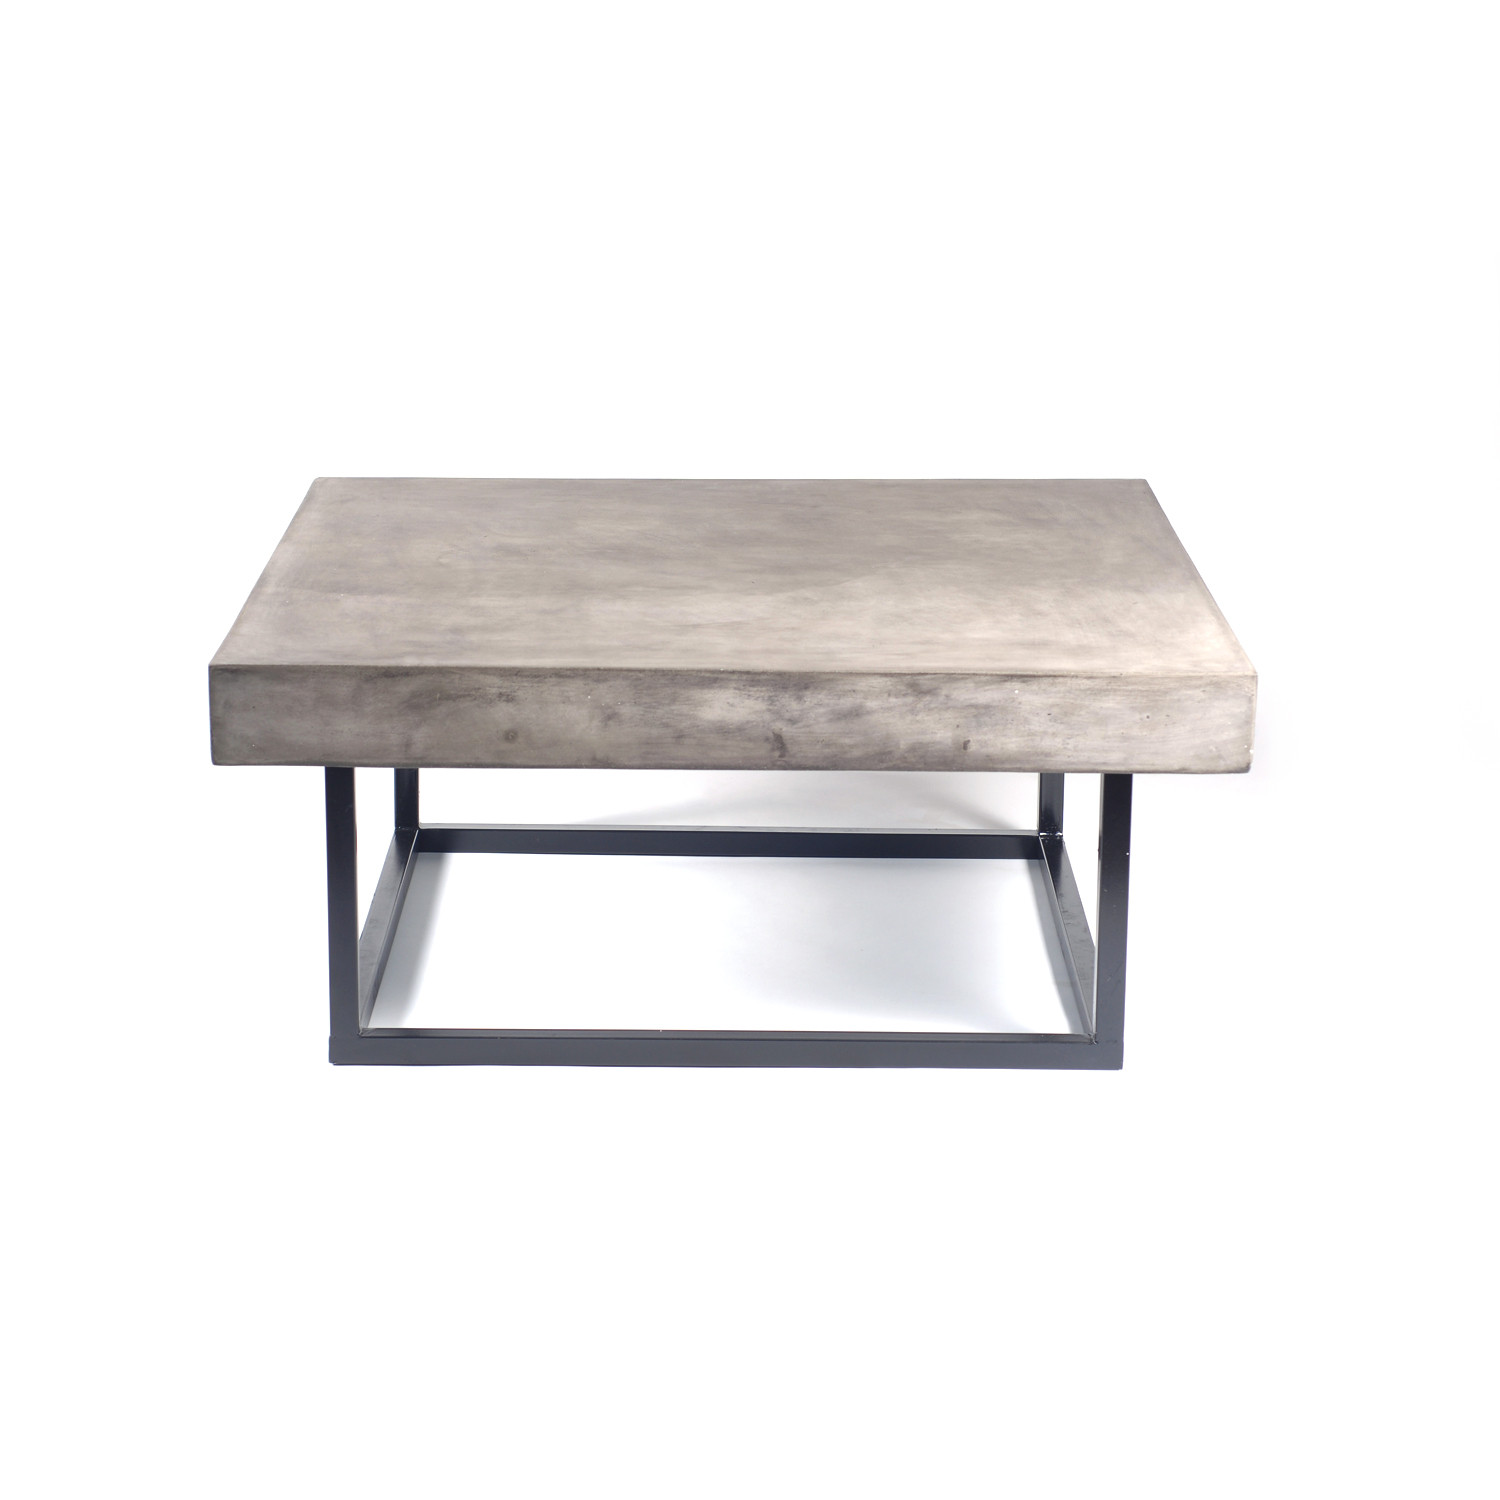 Miami Square Coffee Table MIXX by Urbia Touch of Modern